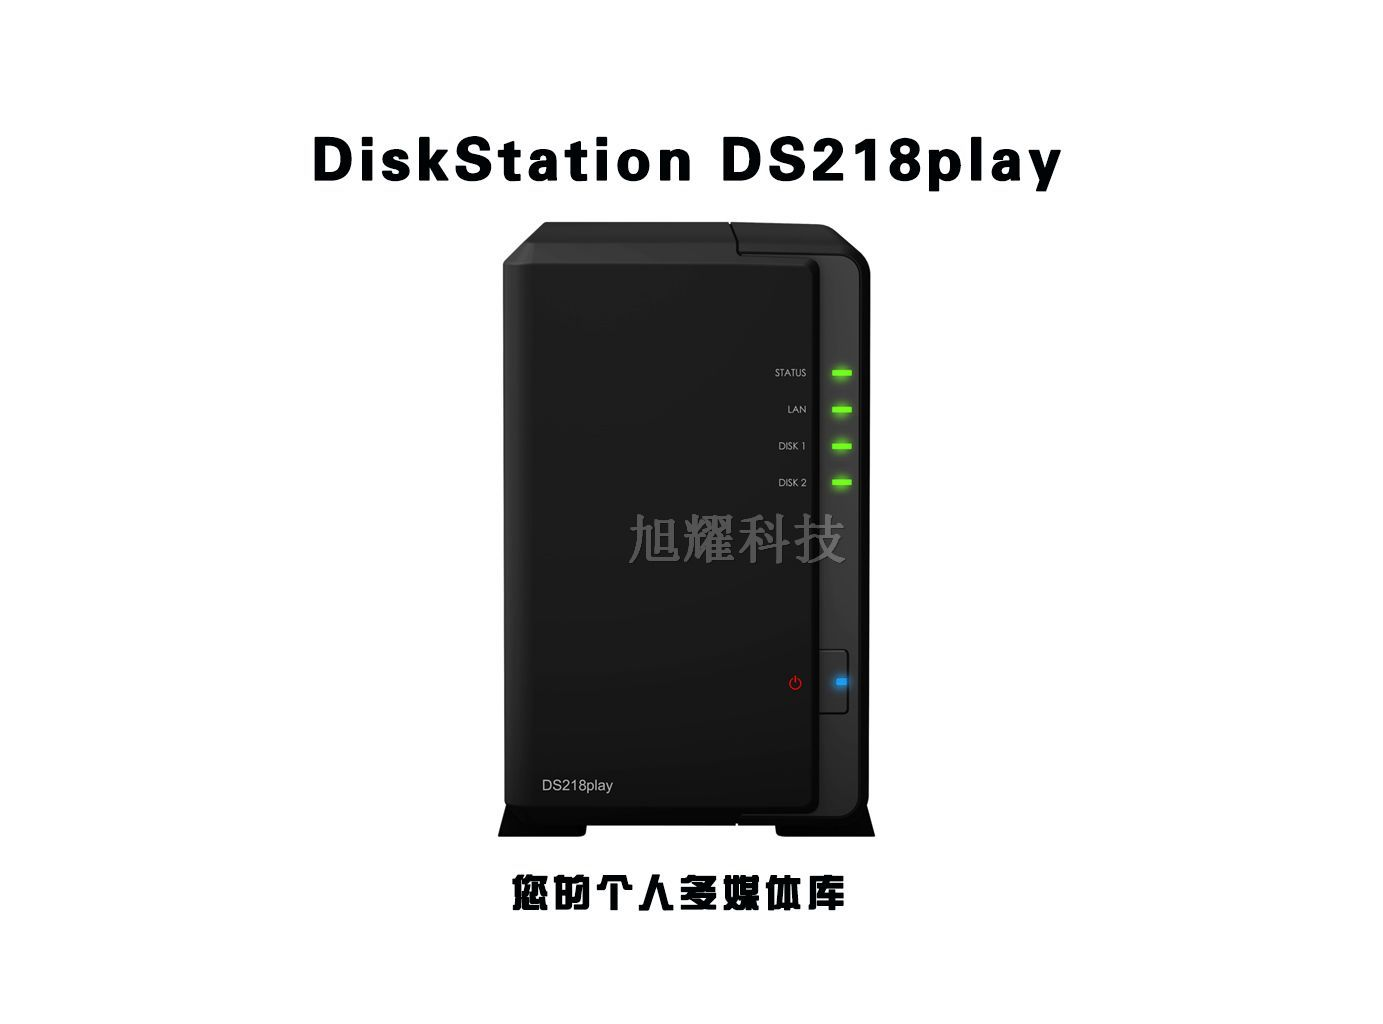 群晖 DiskStation DS218 Play